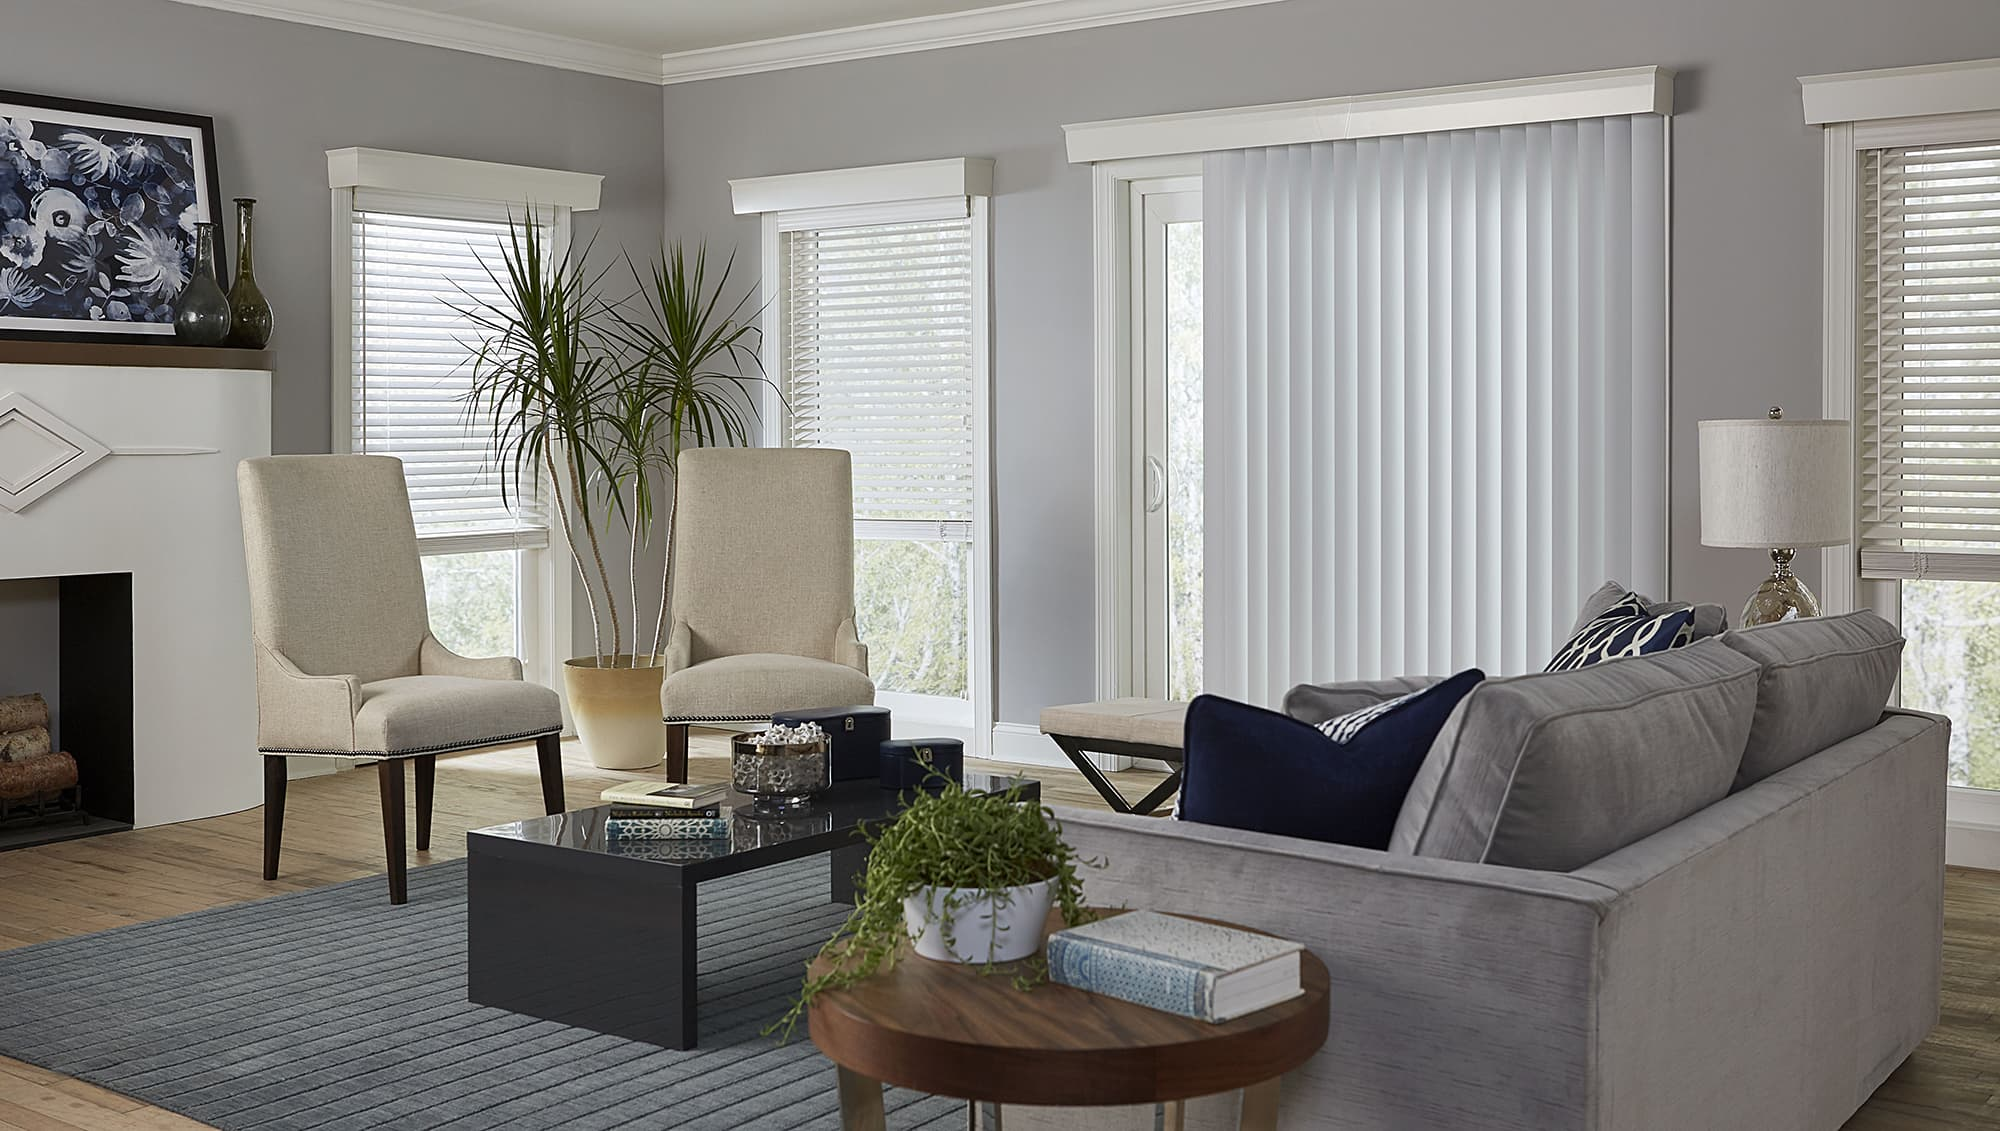 Pictures Of Window Treatments For Sliding Patio Doors: 10 Things You MUST Know When Buying Blinds For Doors